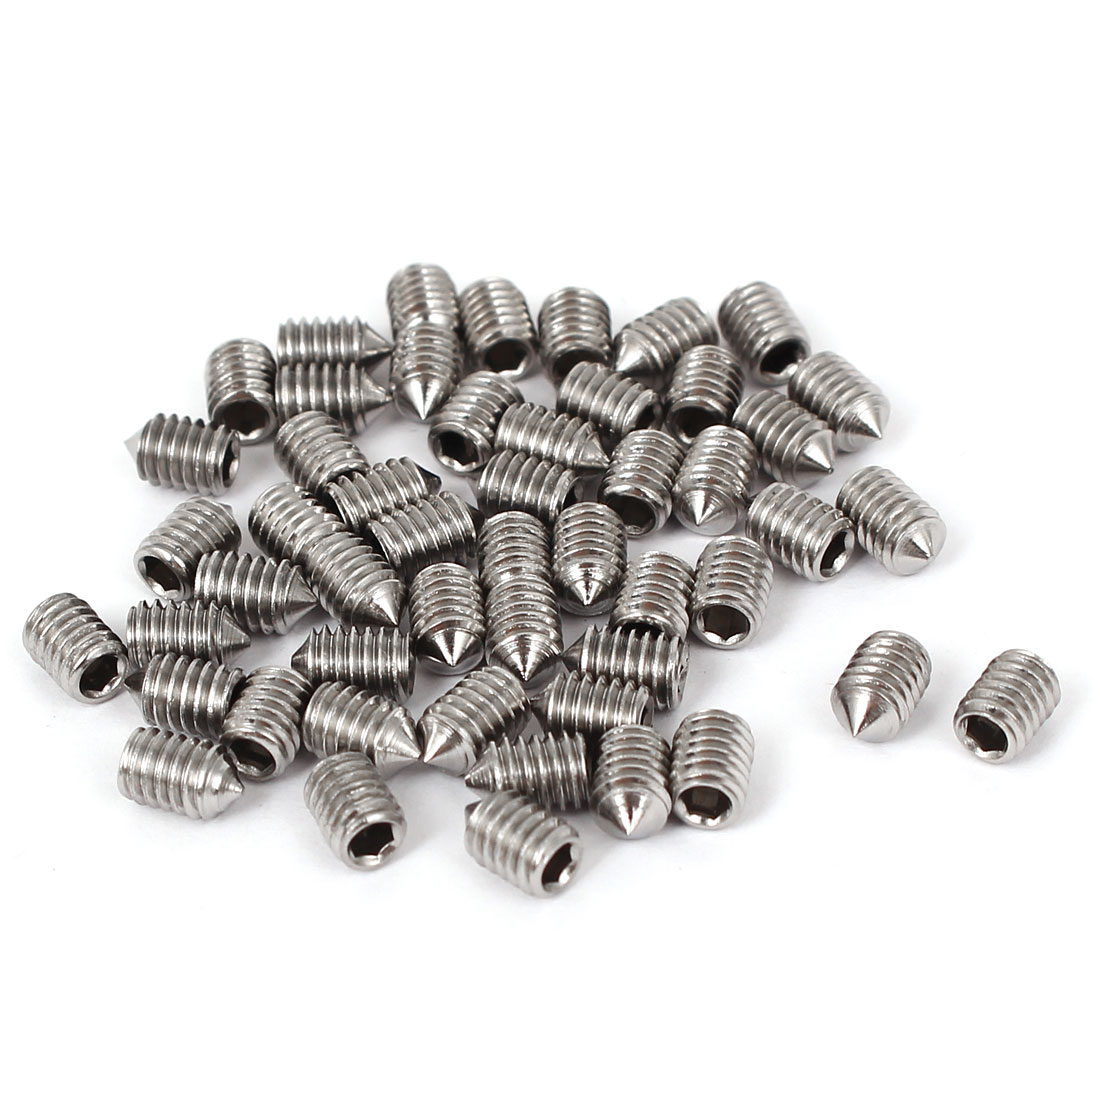 4mm x 6mm Thread Hexagon Socket Cone Point Grub Screws Silver Tone 50 Pcs